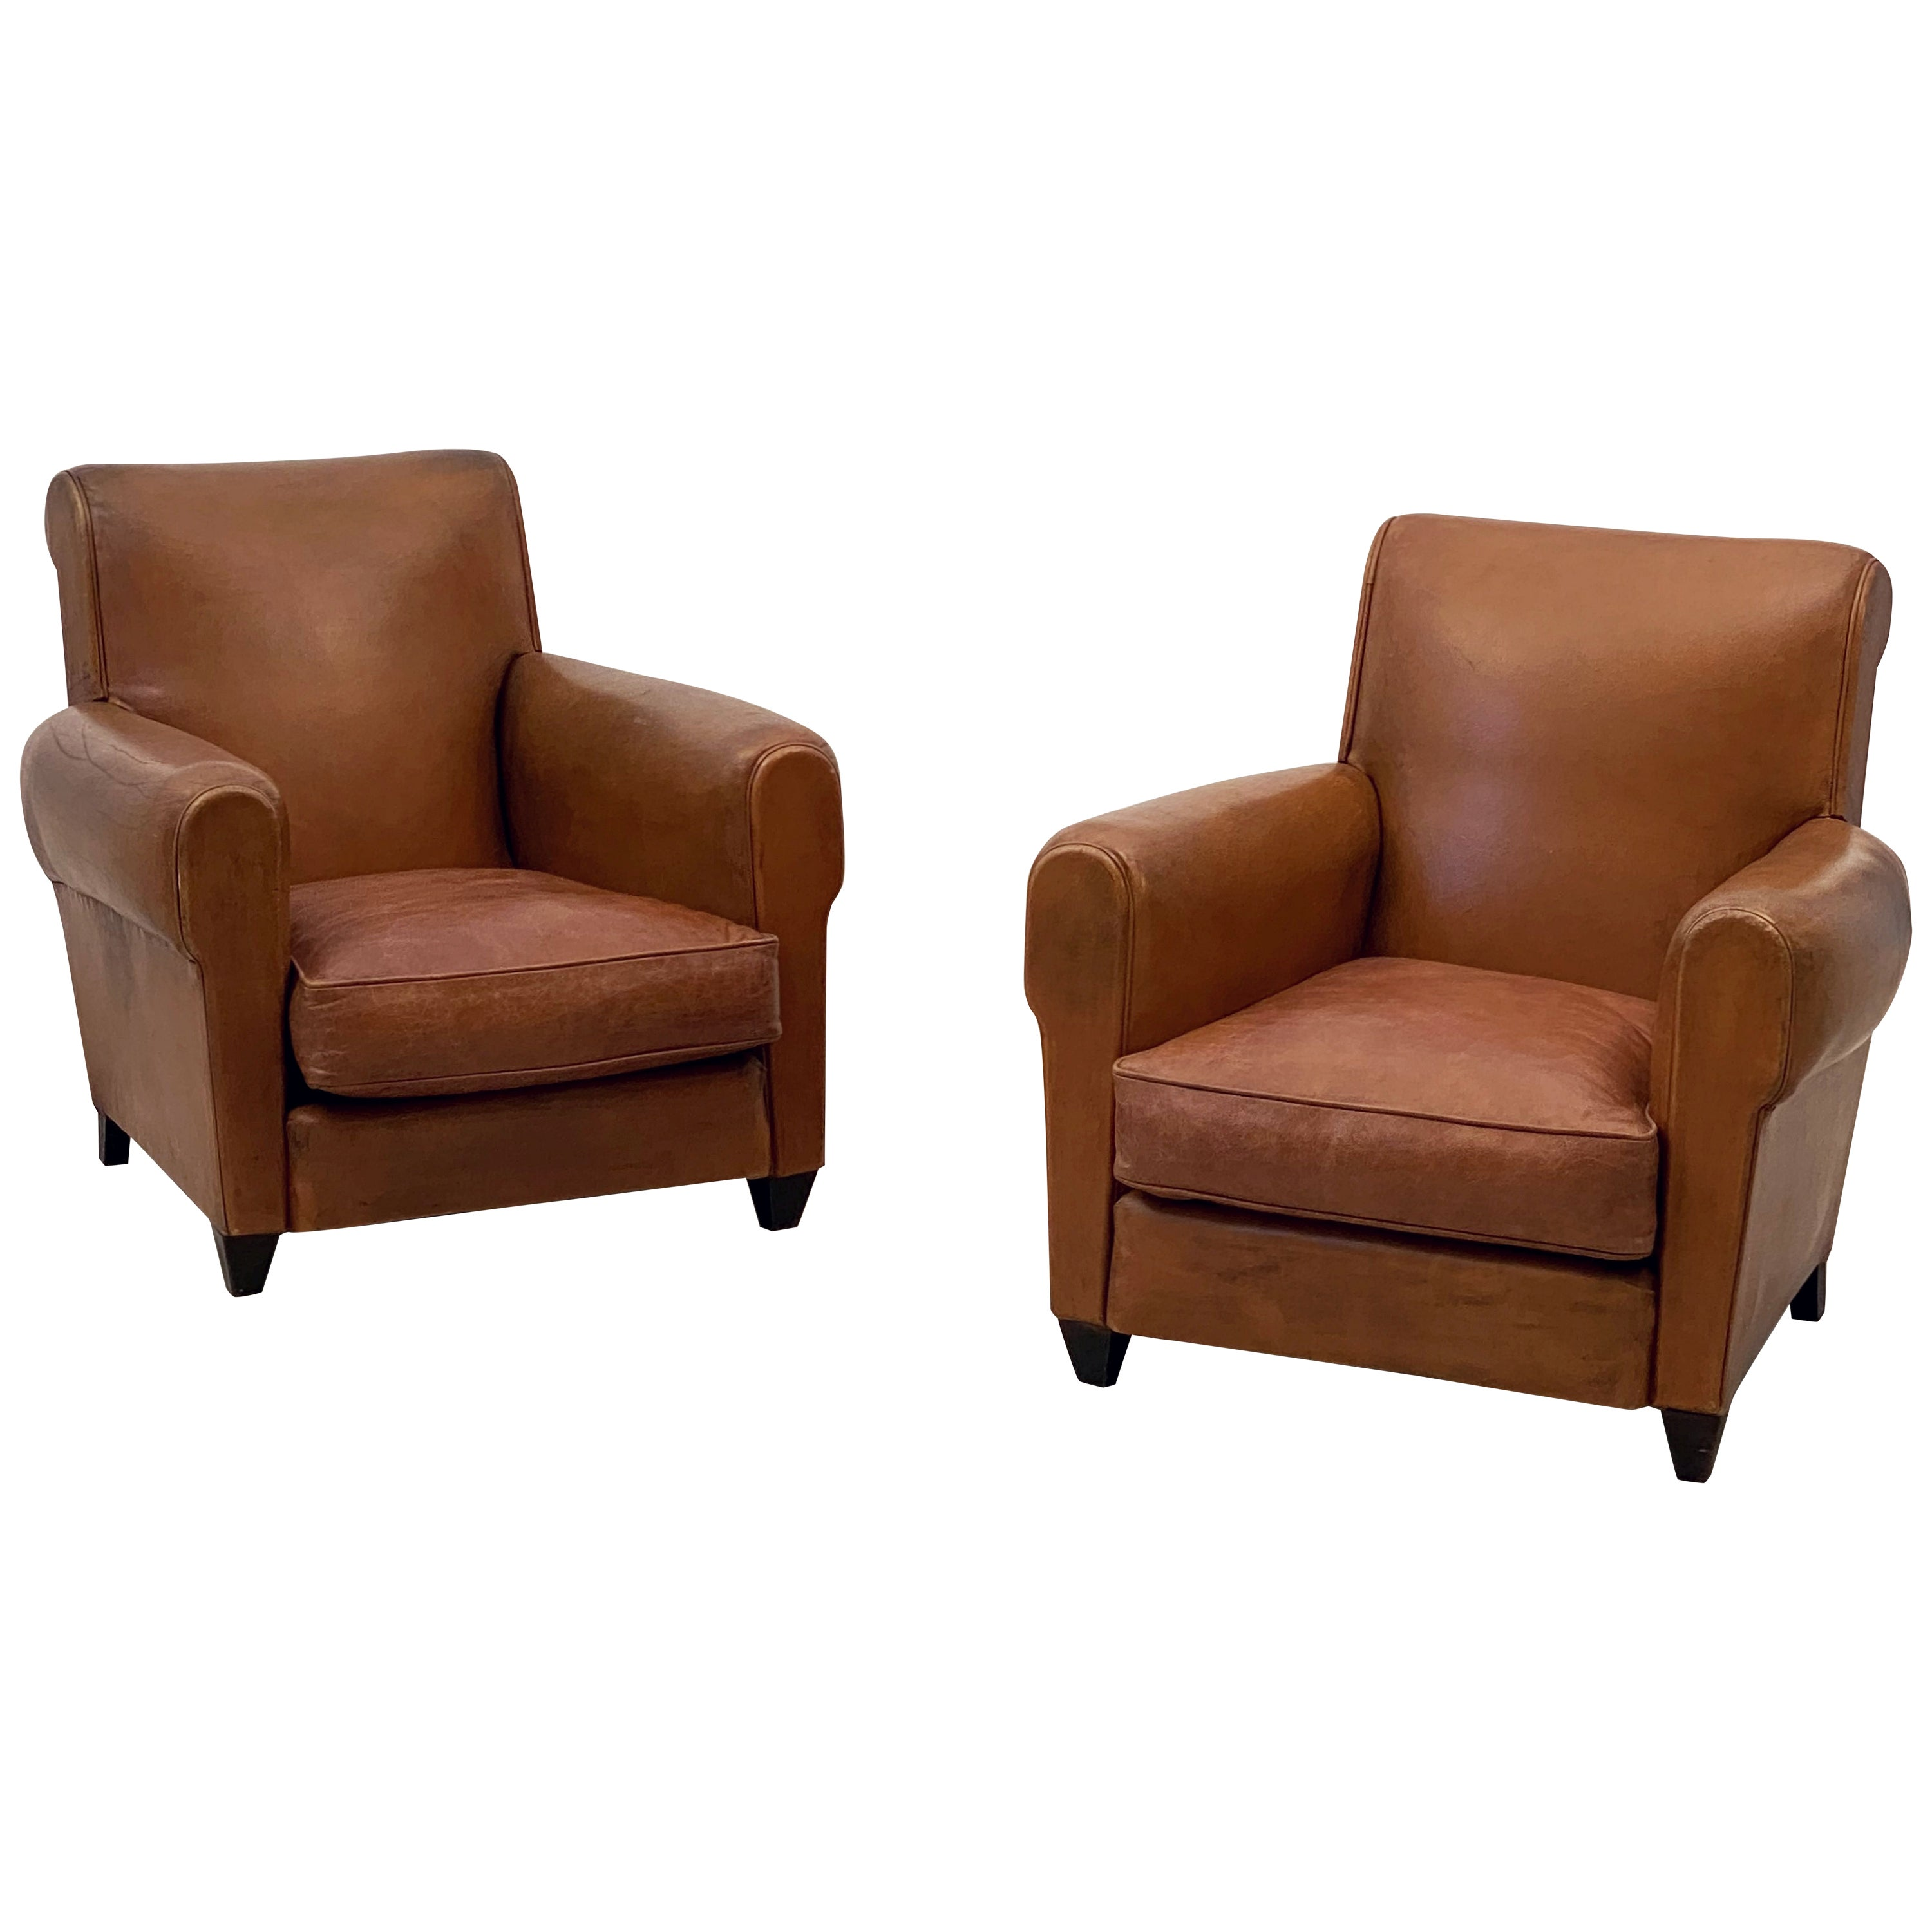 Pair of French Art Deco Leather Club Chairs 'Priced Individually'